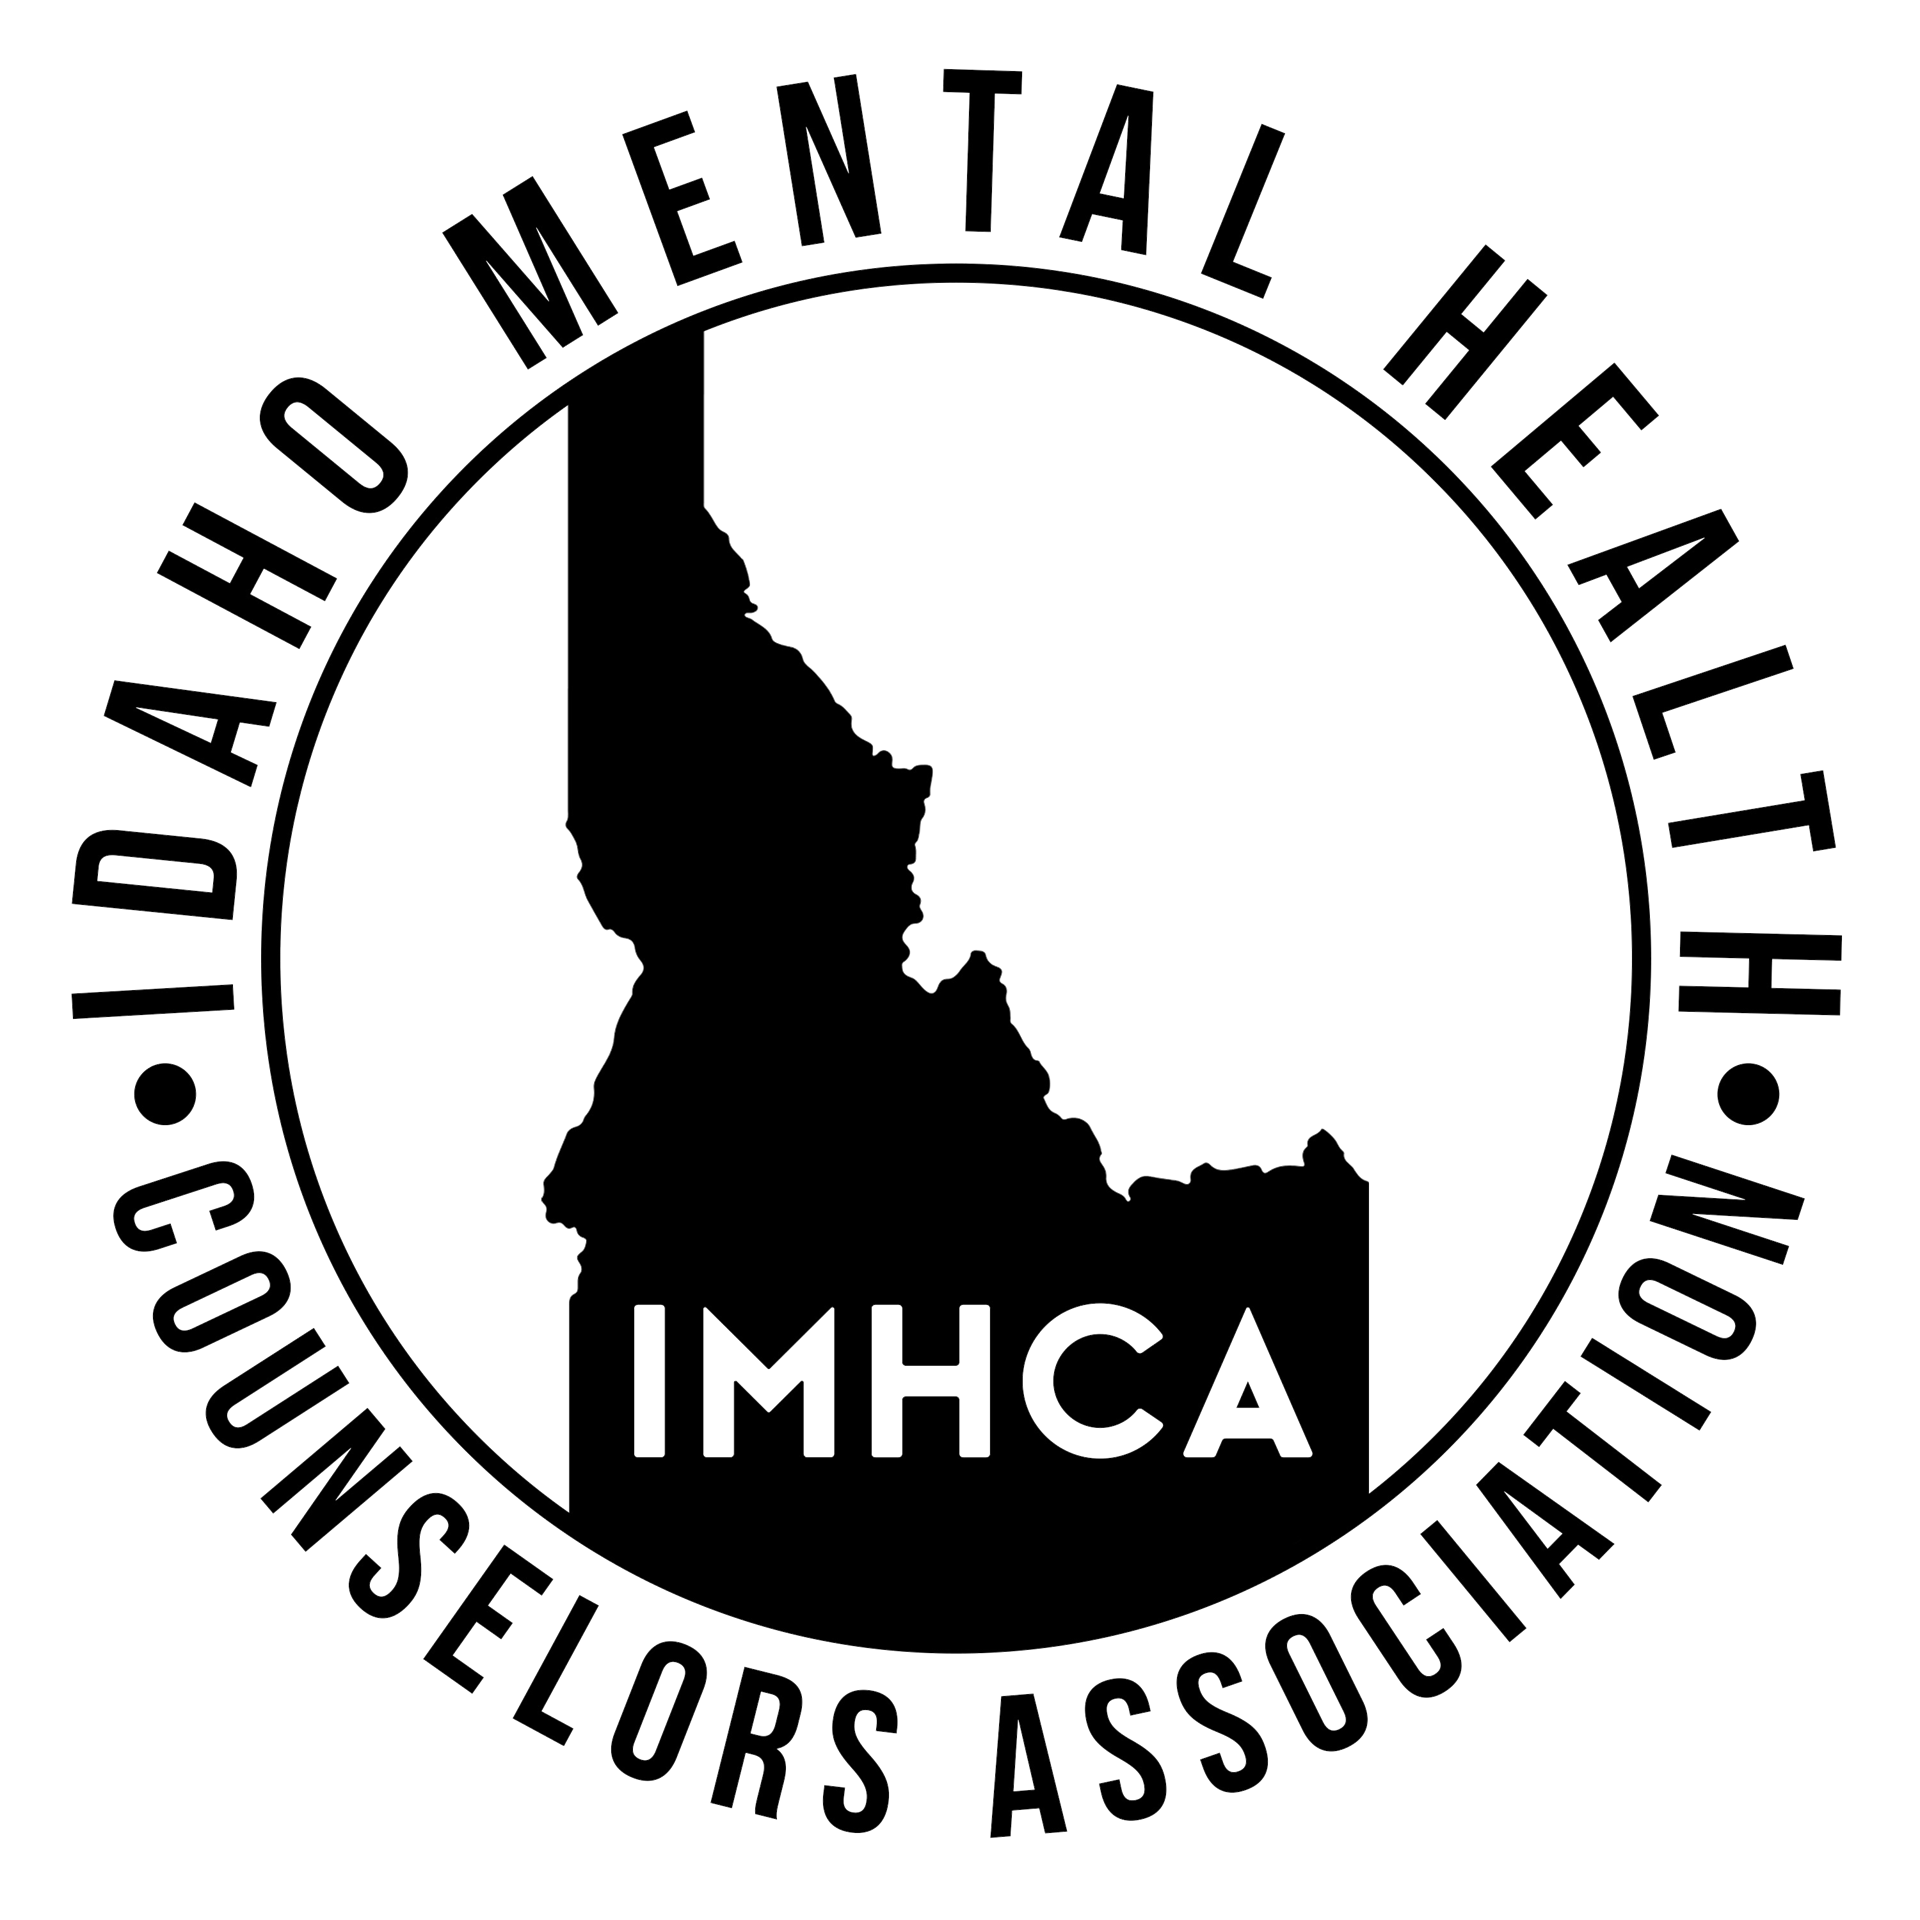 Idaho drawing silhouette. Mental health counselors association